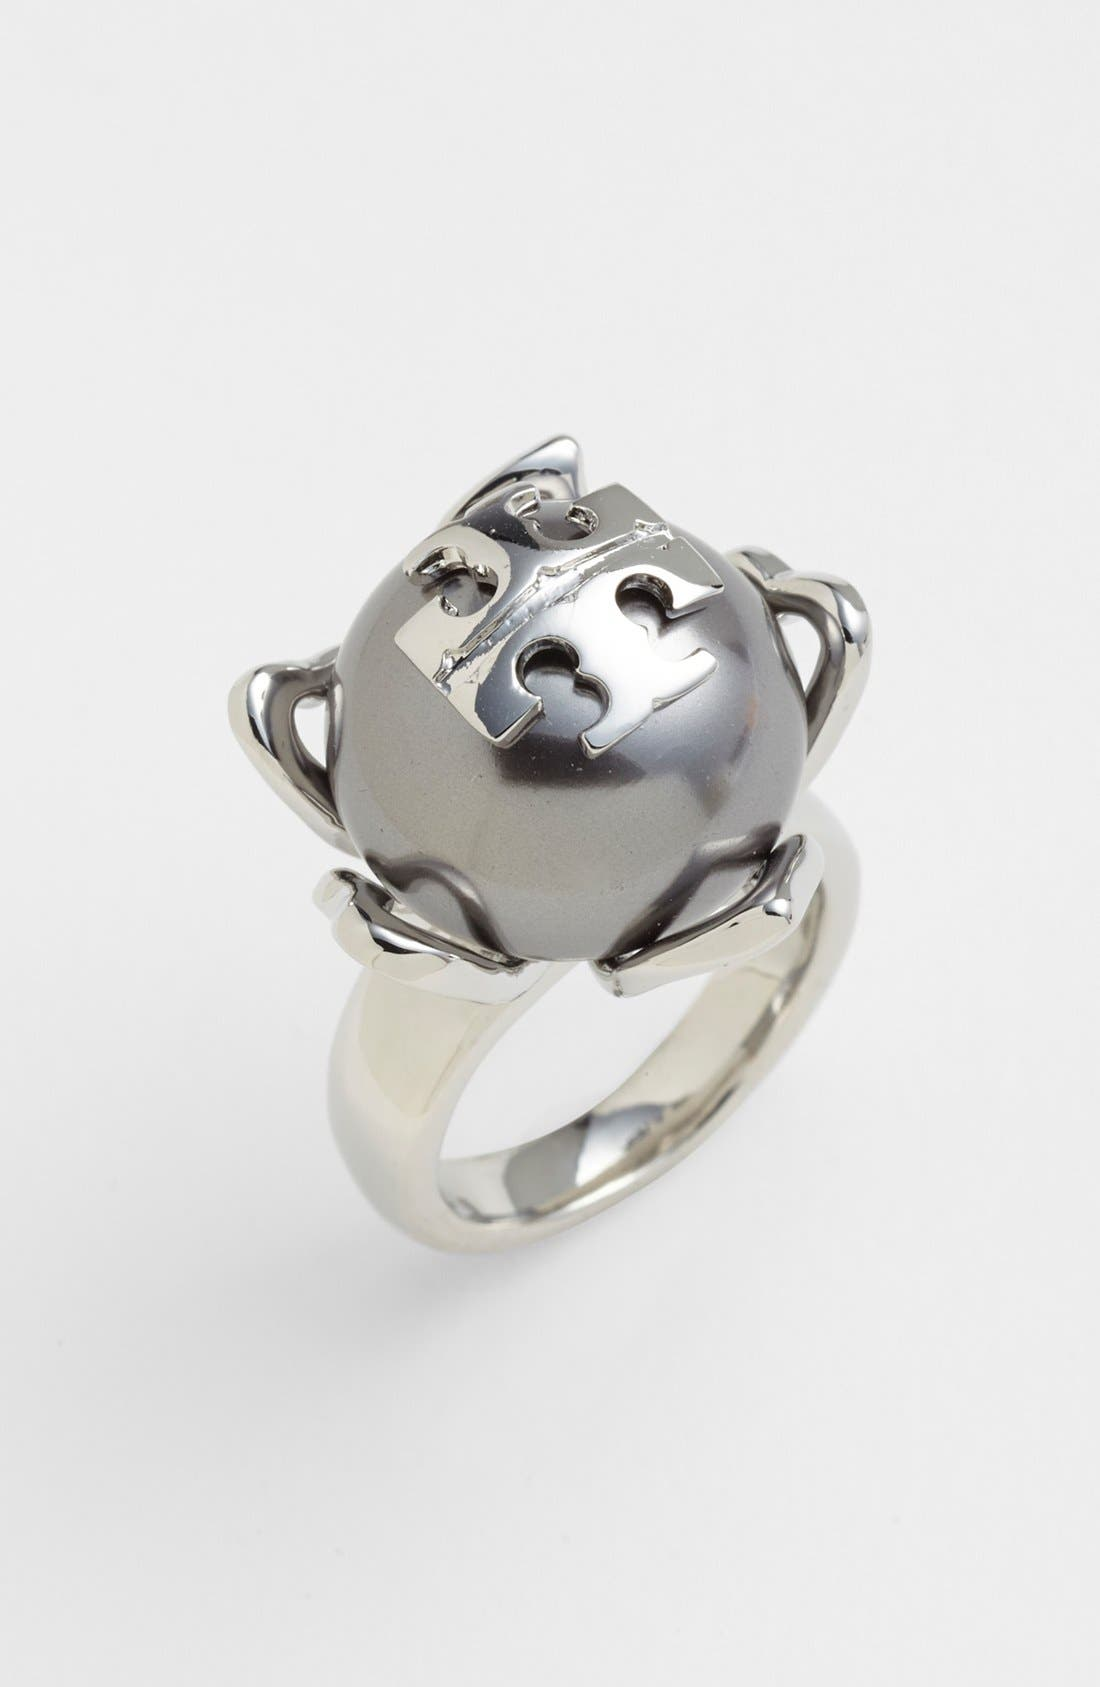 Main Image - Tory Burch 'Emma' Faux Pearl Ring